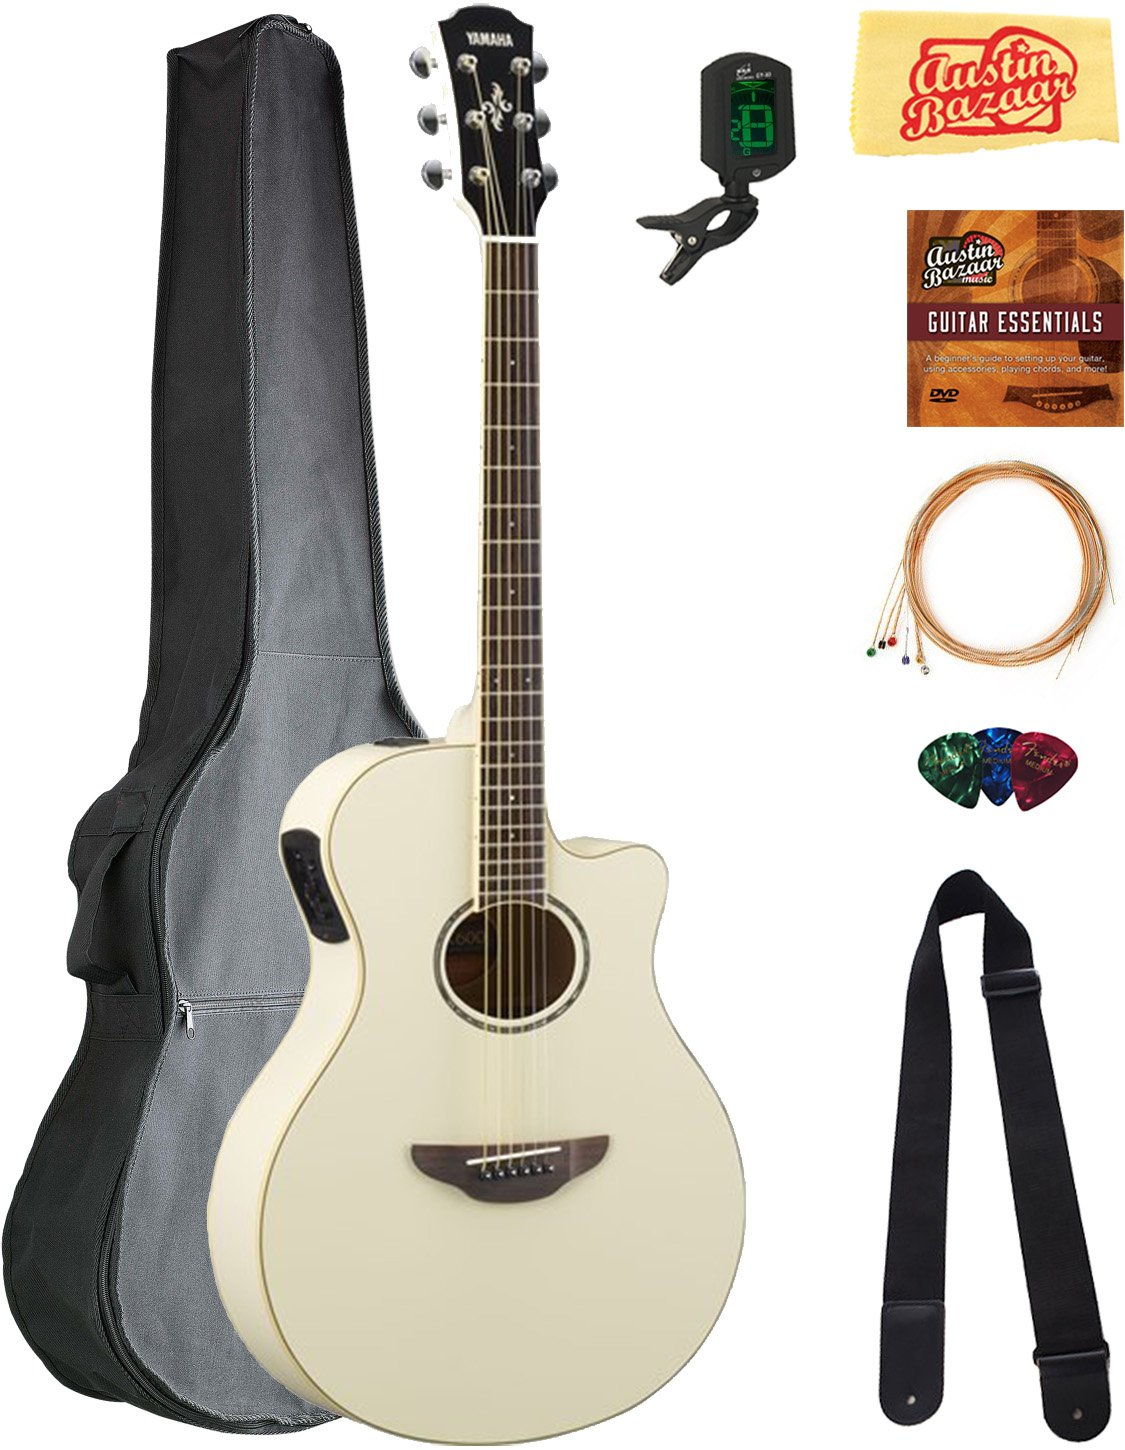 Yamaha APX600 Thin Body Acoustic-Electric Guitar - Vintage White Bundle with Gig Bag, Tuner, Strings, Strap, Picks, Austin Bazaar Instructional DVD, ...